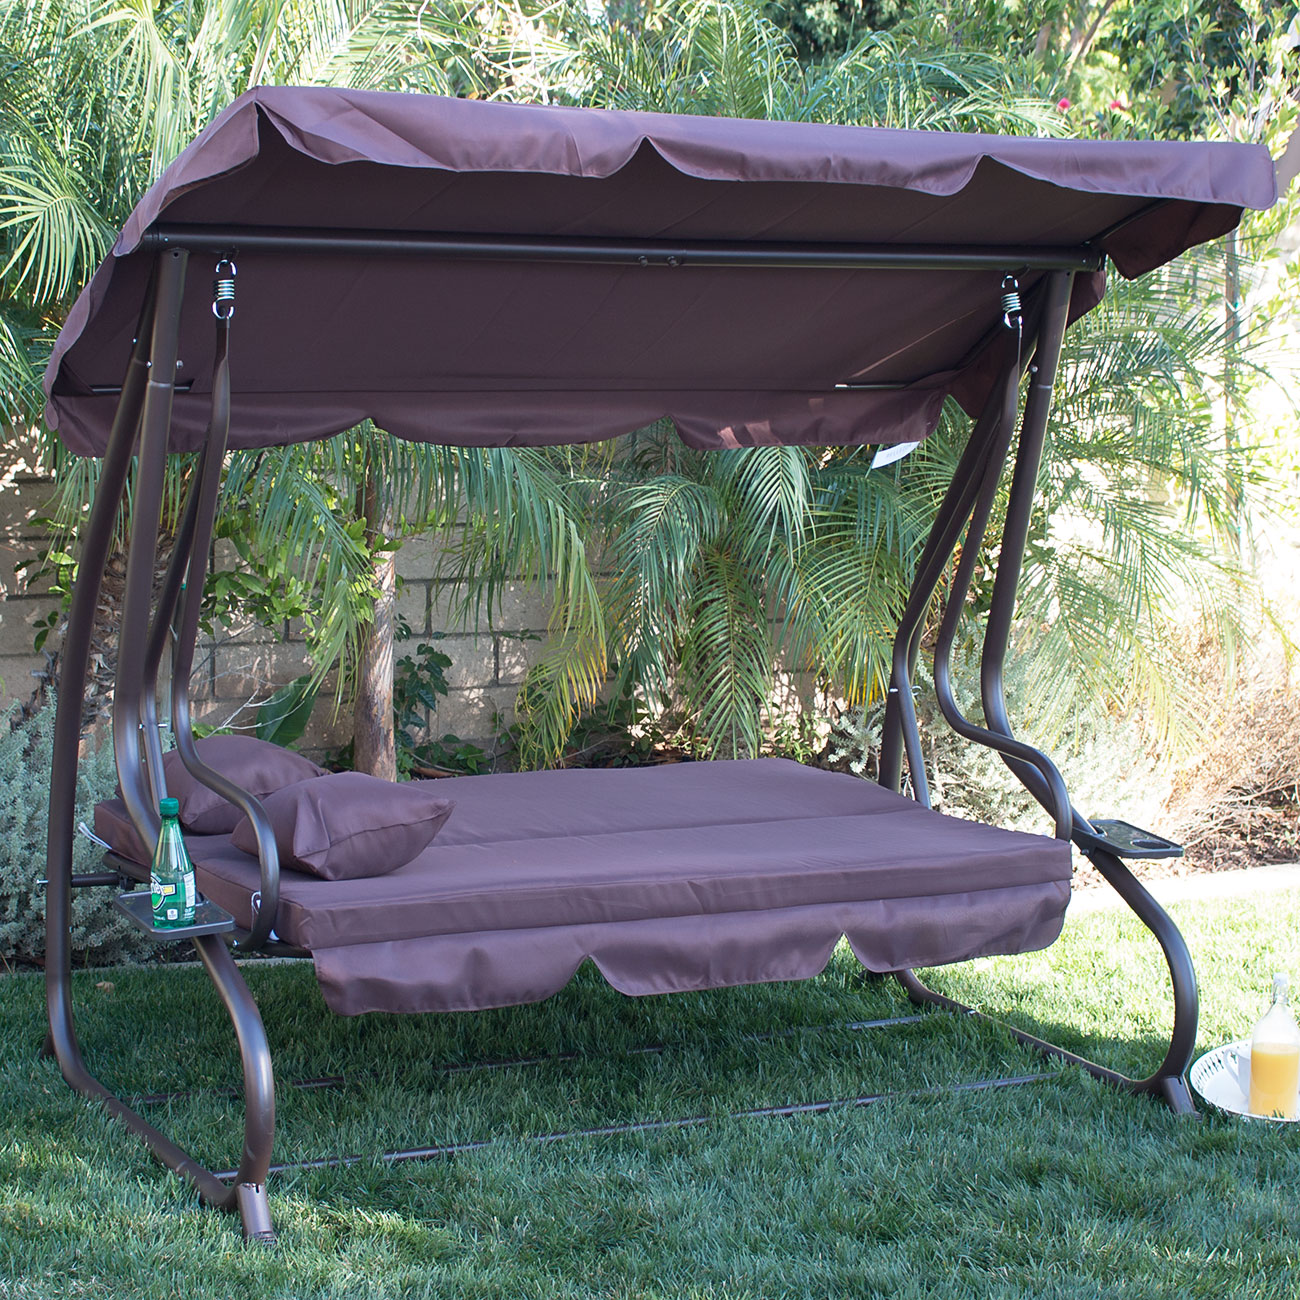 3 person outdoor swing w canopy seat patio hammock furniture bench yard loveseat ebay Yard bench